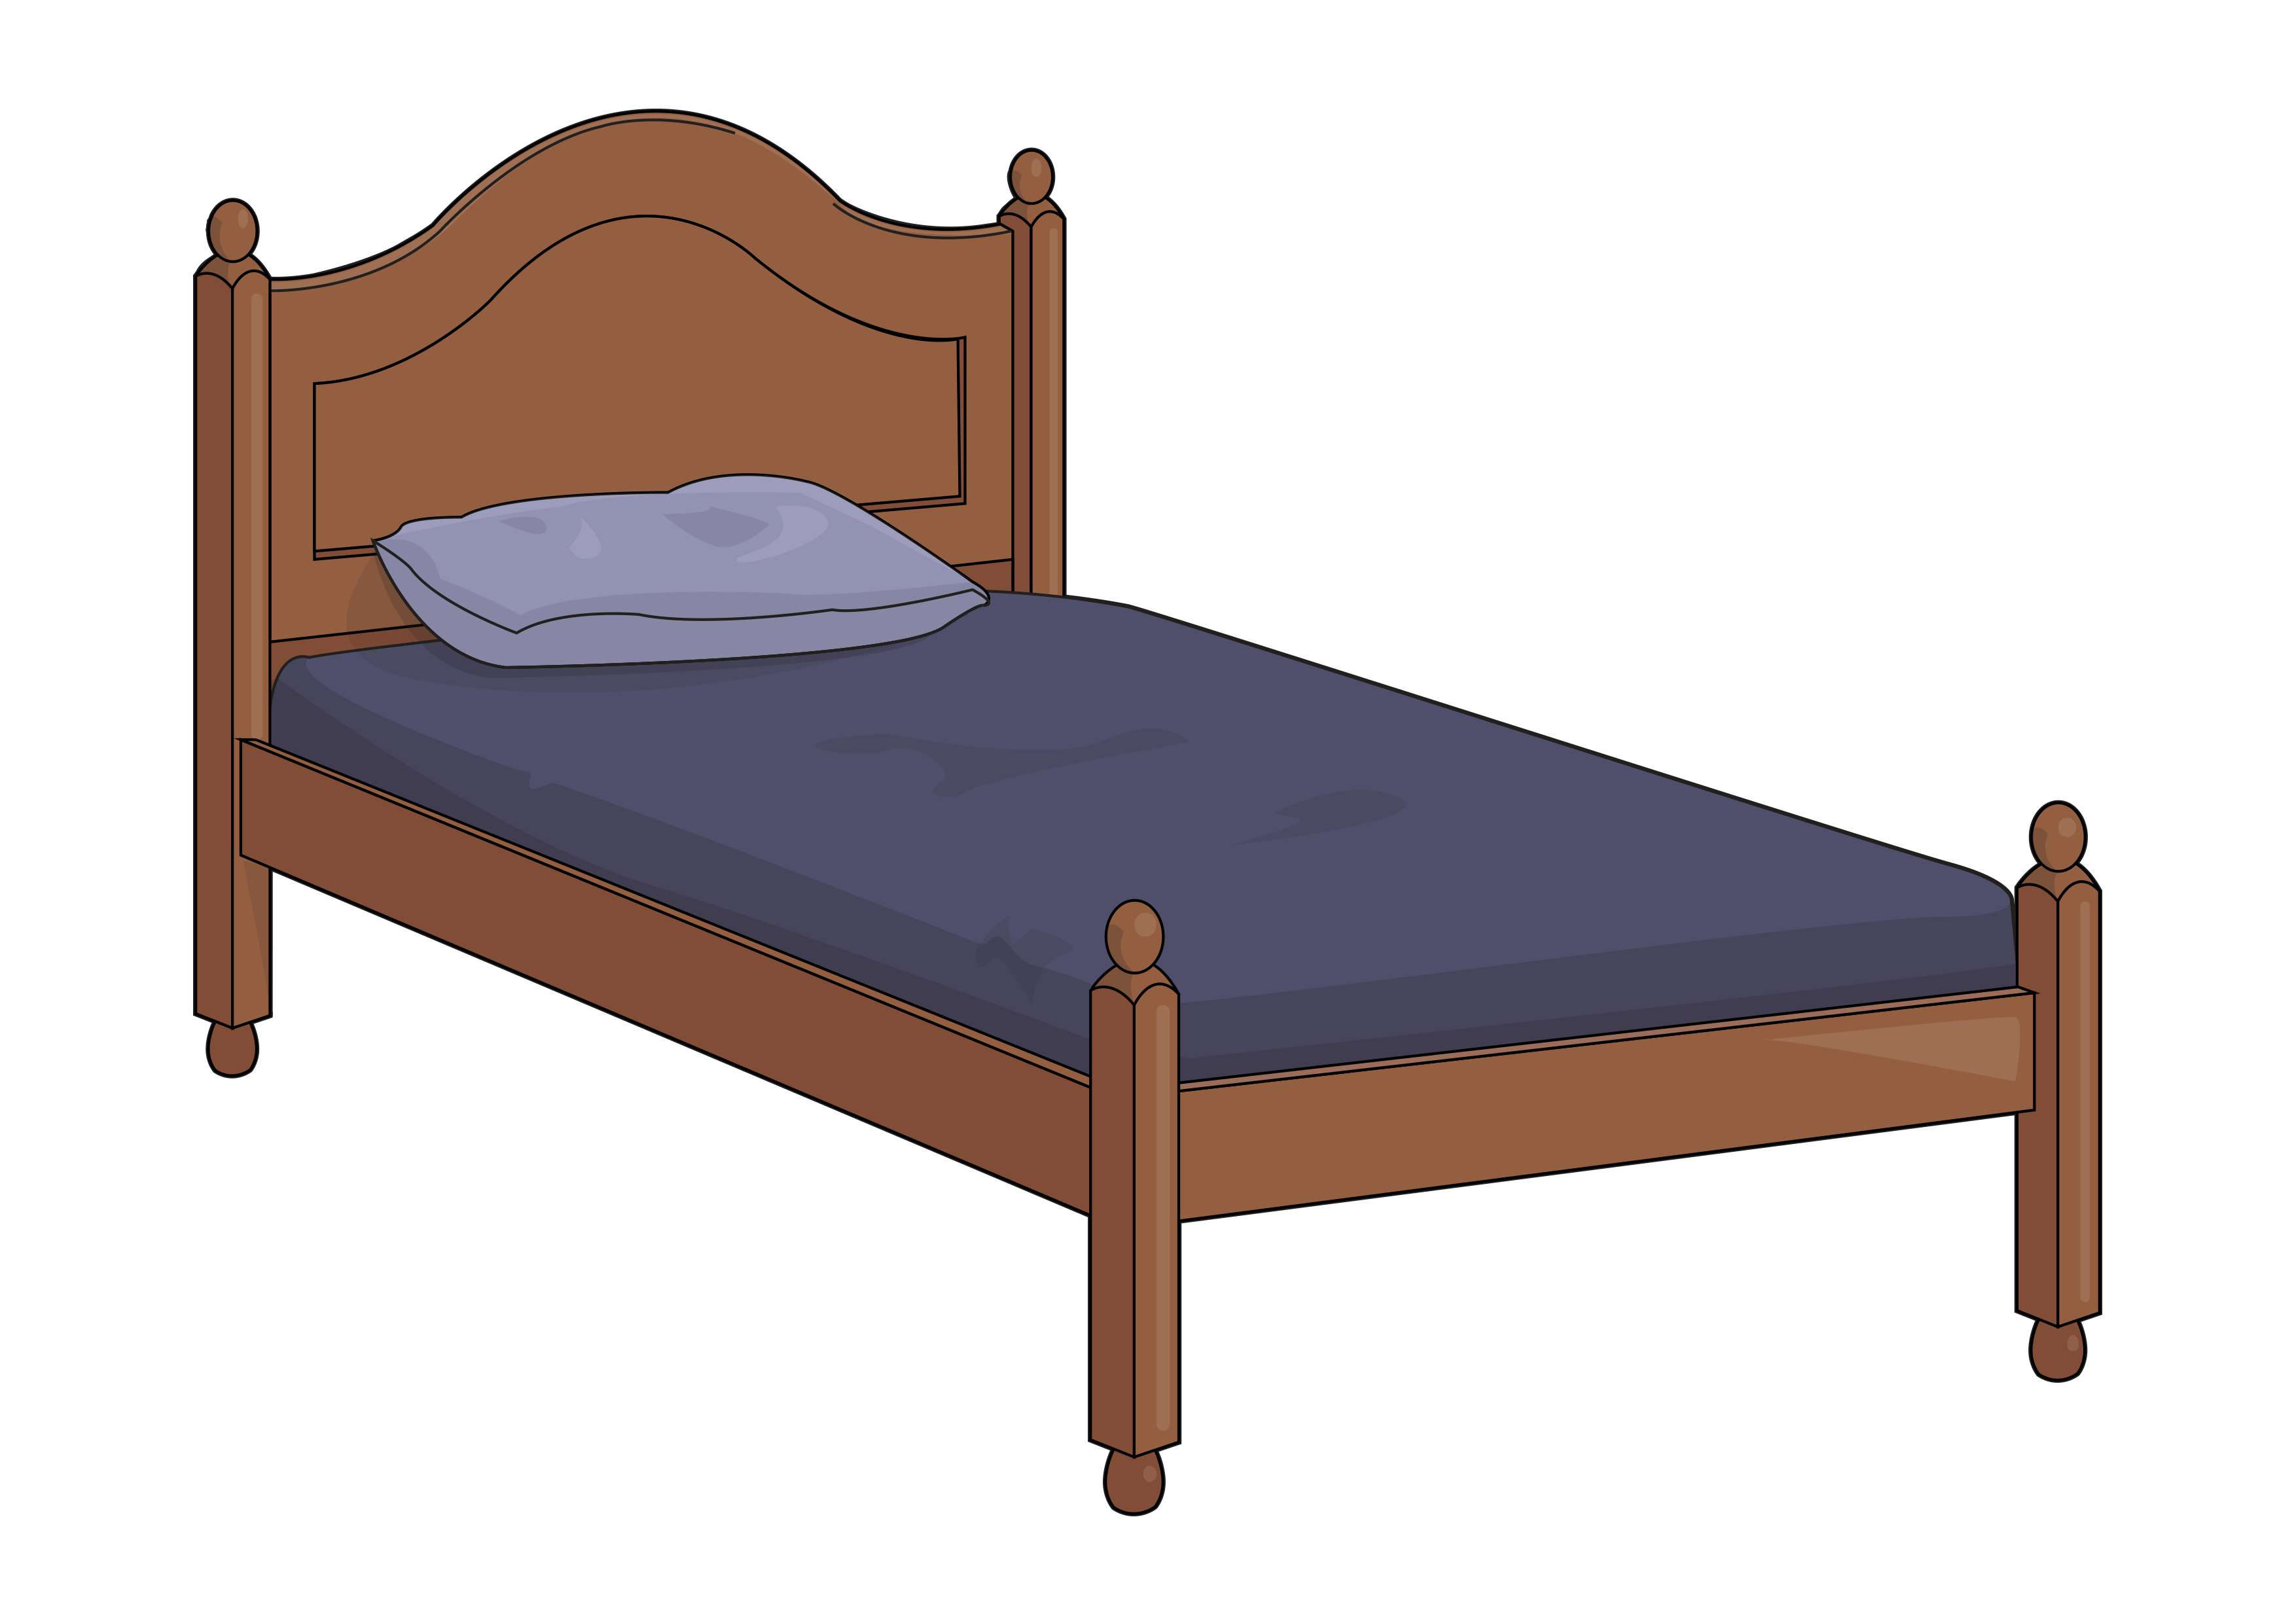 Single Bed Png